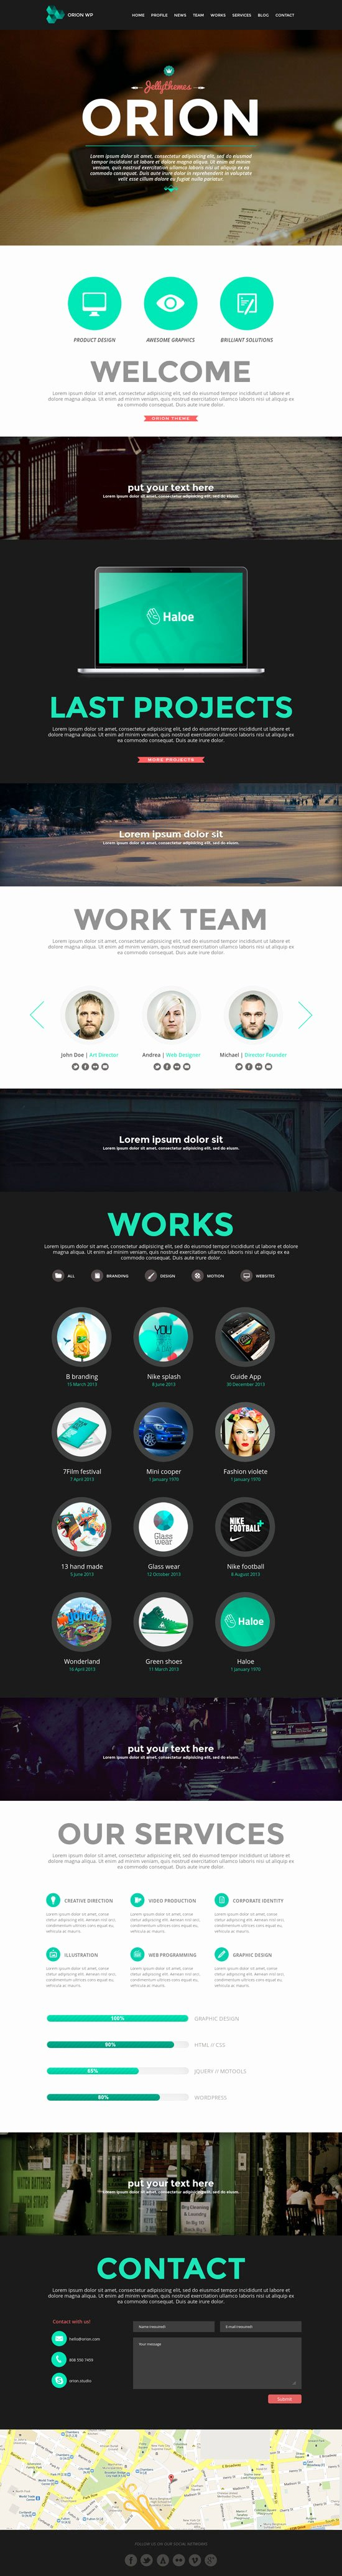 10 Amazing E Page Parallax Scrolling Website Templates